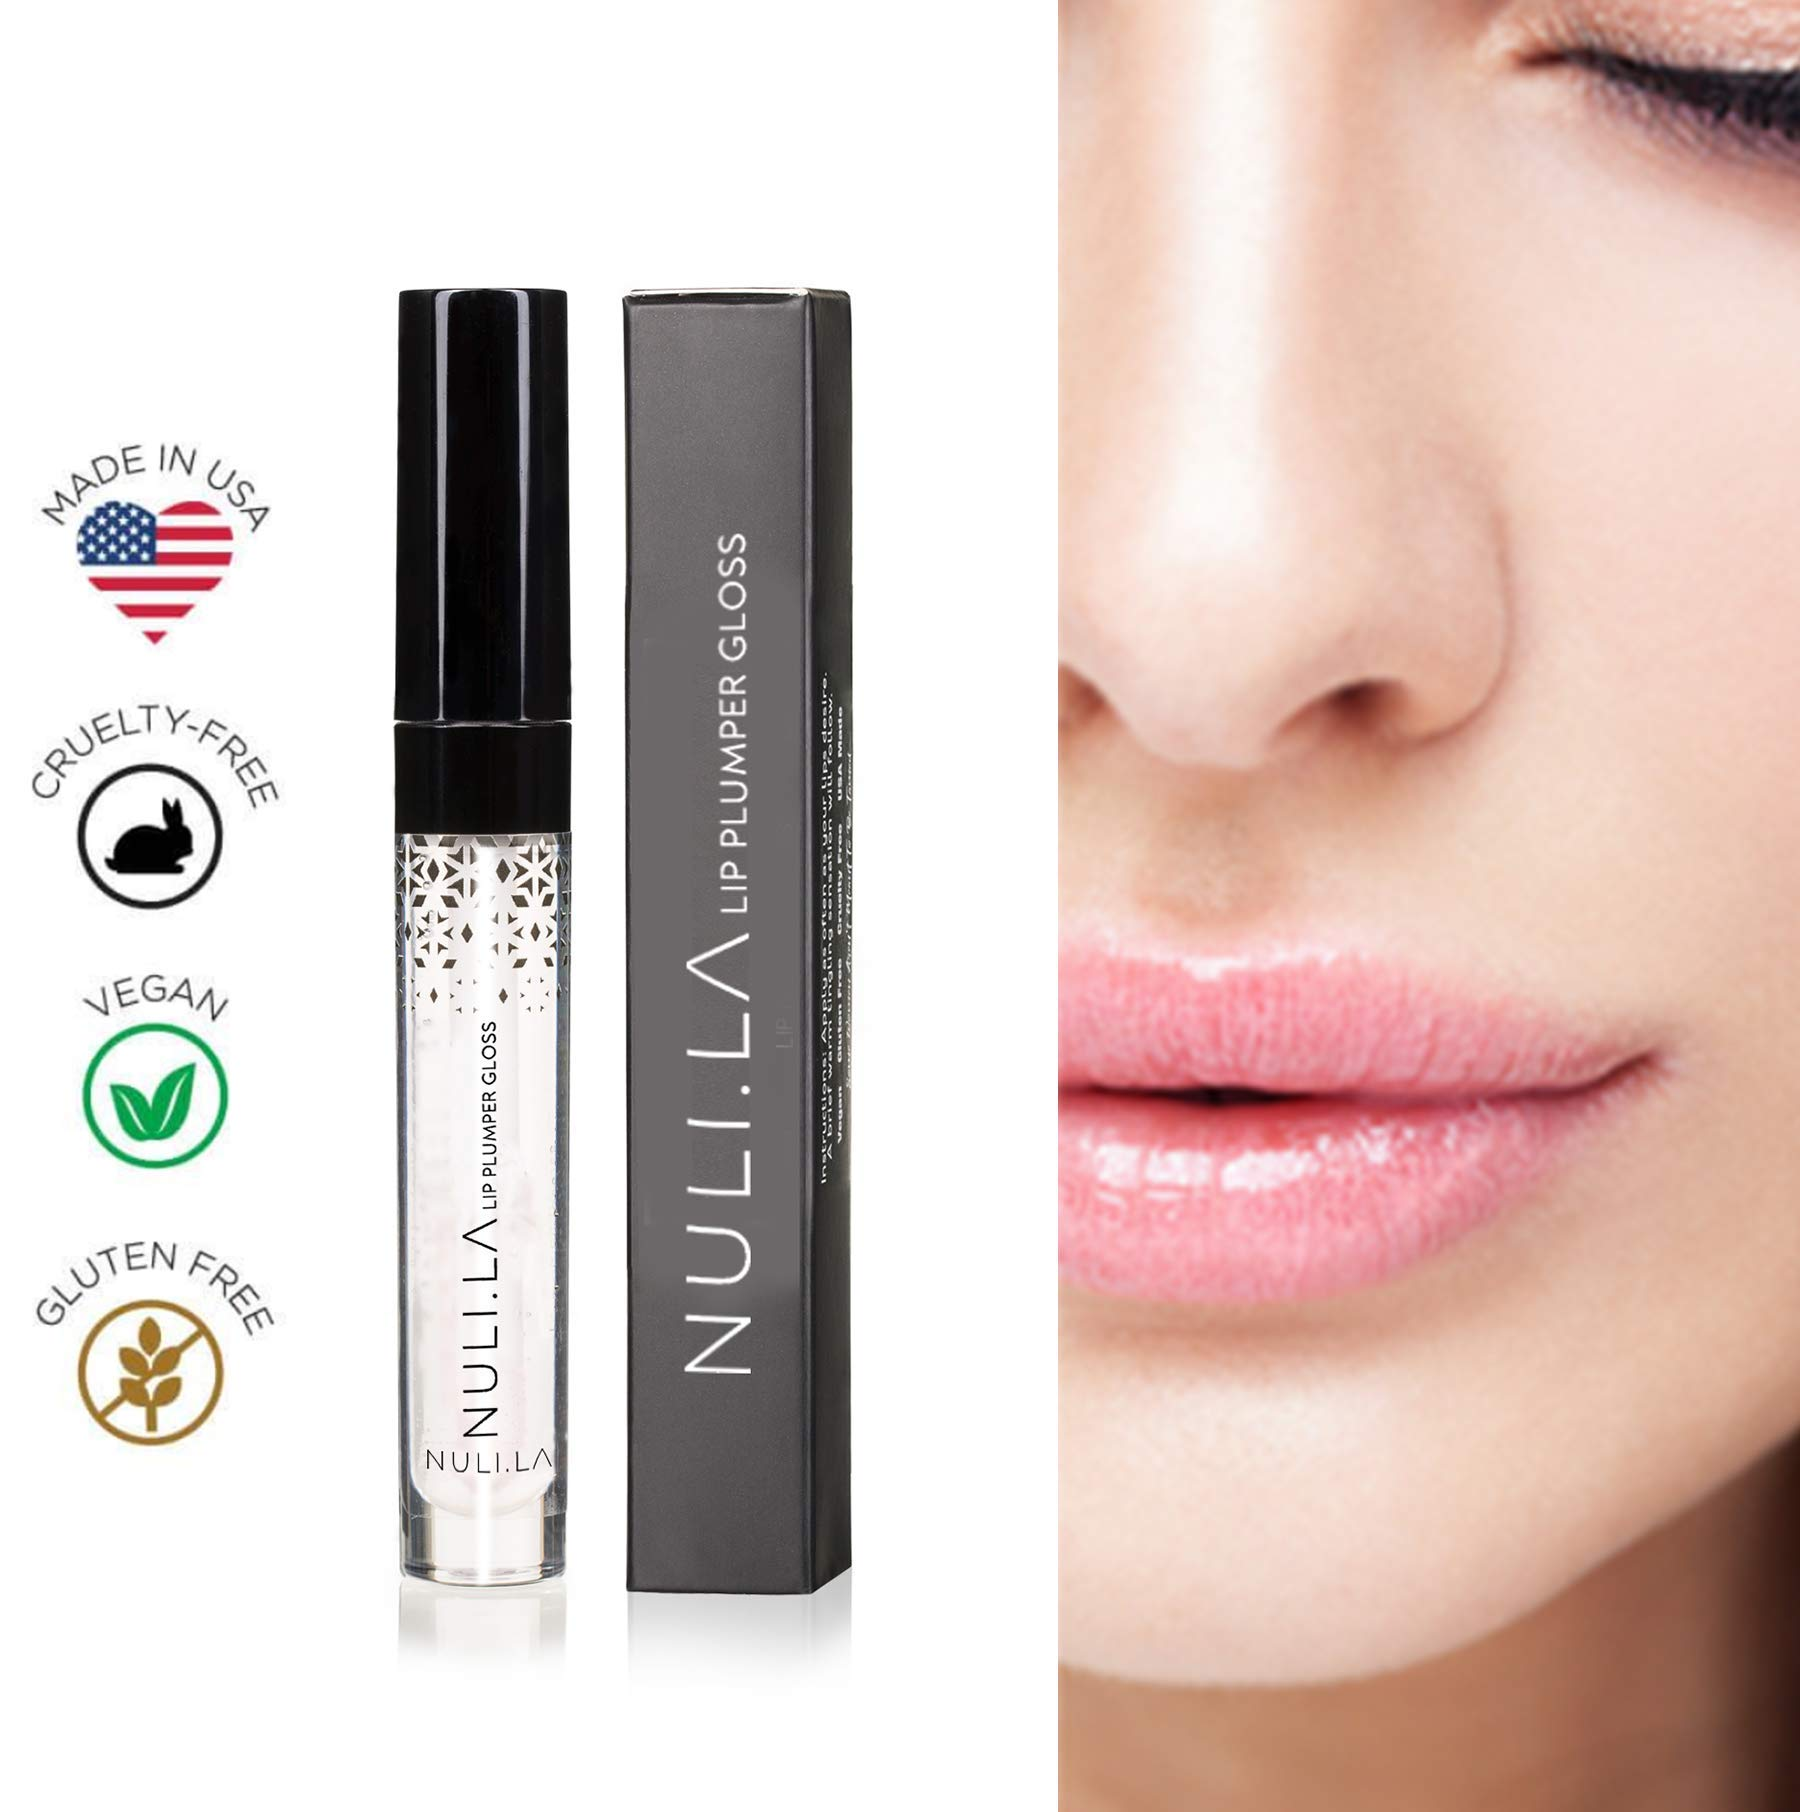 Nuli La Lip Plumper Lip Gloss is all Natural Serum with Vitamin E, Antioxidants and Hydrating Skin Conditioning Agents for Pouty Shiny Lips - Lip Plumpers that Really Work